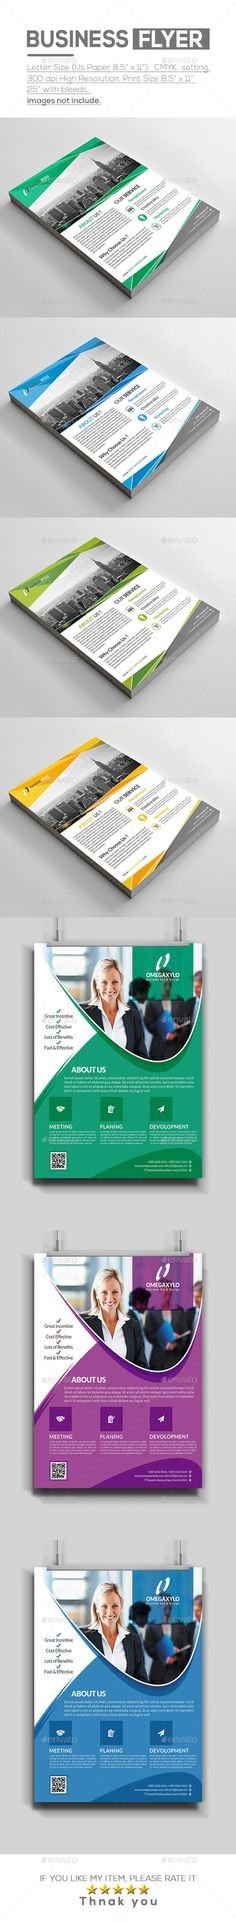 Simple Real Estate Flyer Real estate flyers and Print templates - web flyer template